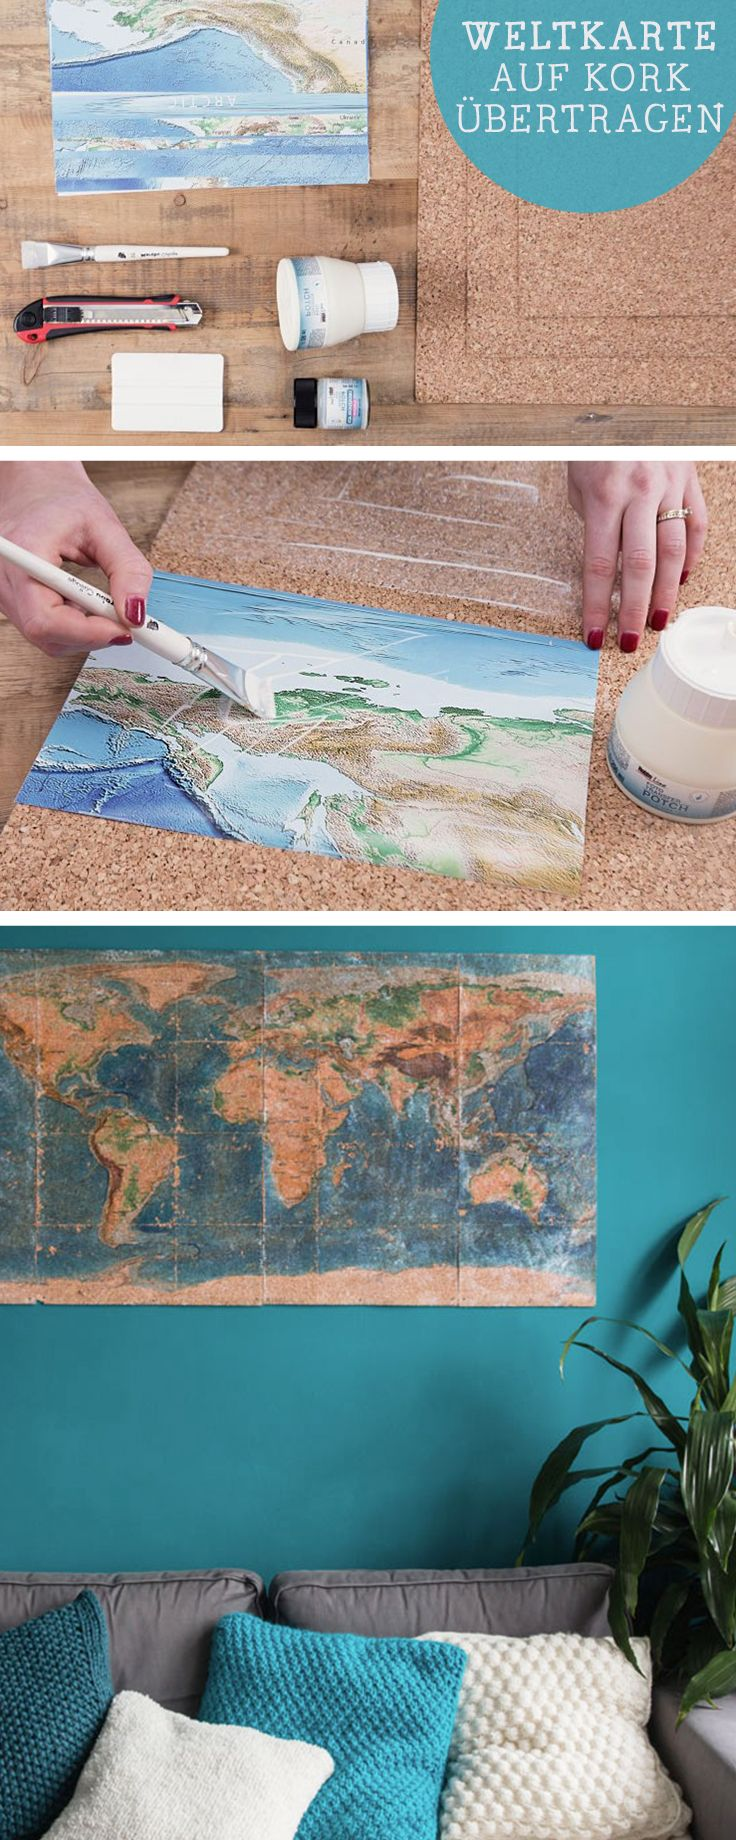 DIY-Anleitung für selbstgemachte Wanddeko: Weltkarte auf Kork übertragen / diy tutorial: world map made of cork,  wall decoration, selfmade home decor via DaWanda.com